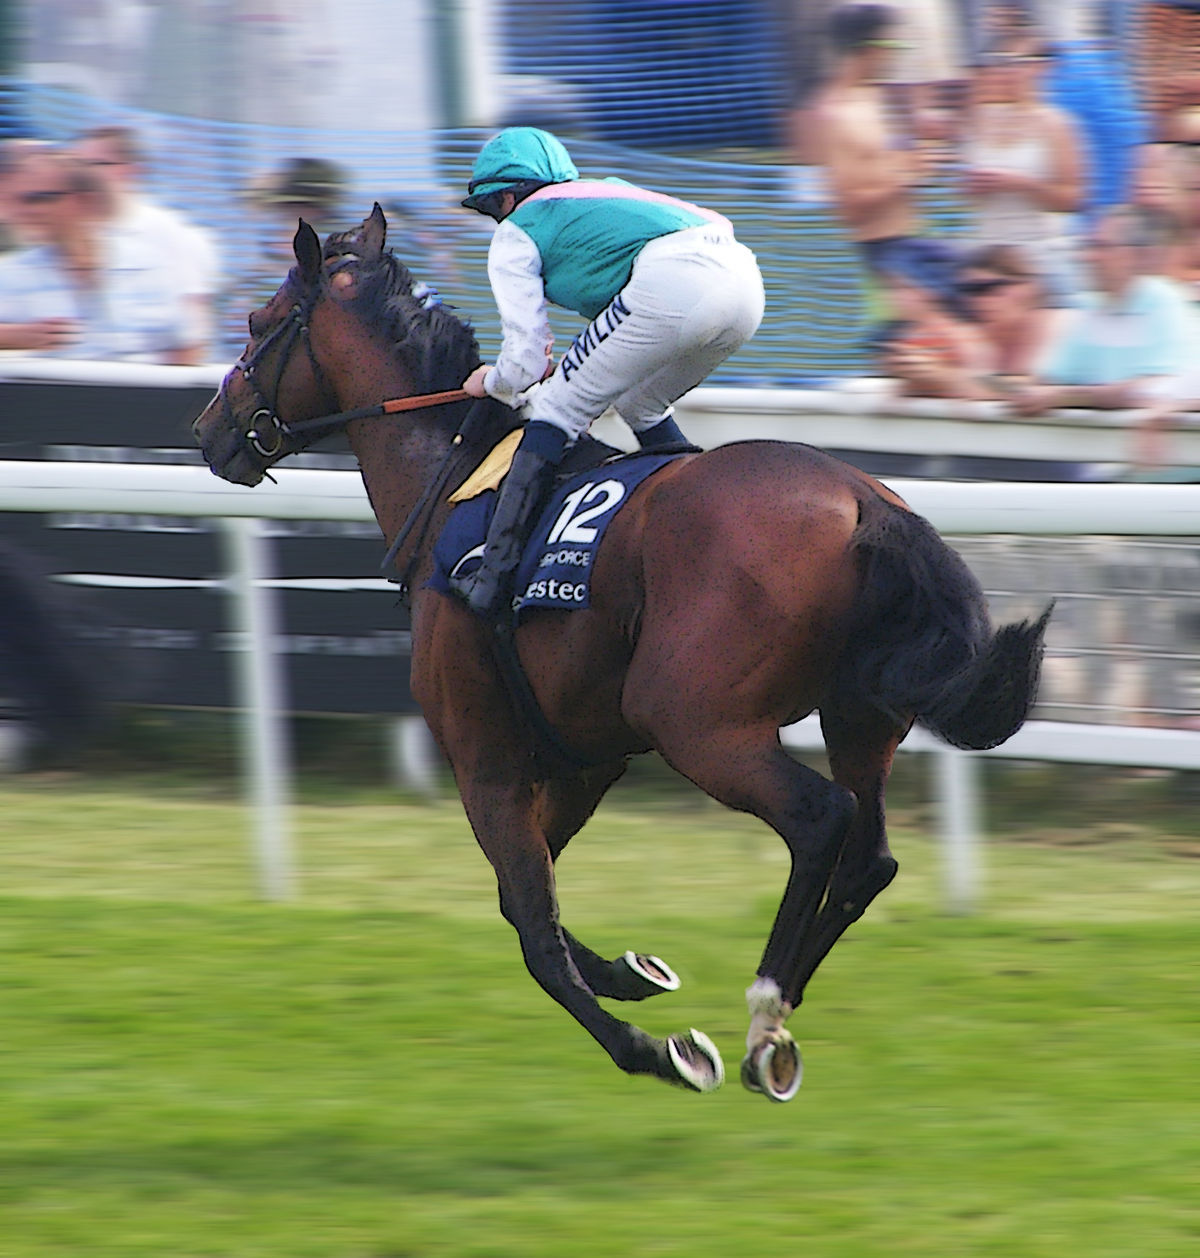 Workforce horse wikipedia for 2b cuisine epsom downs